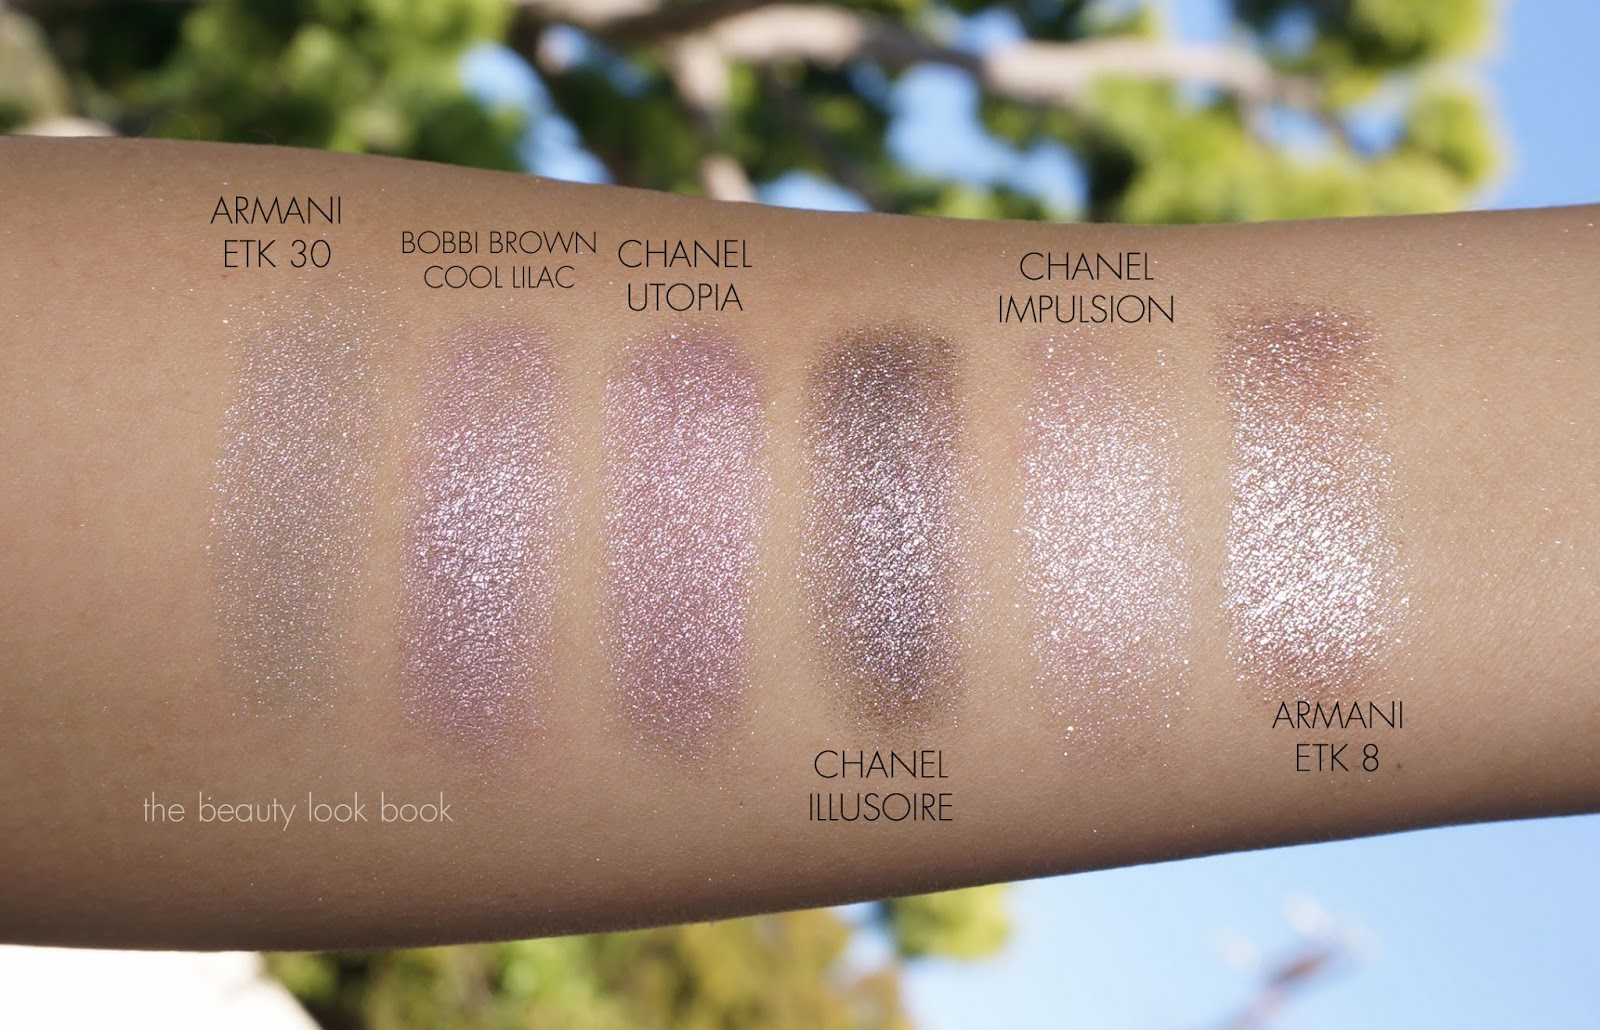 Chanel Illusion Dombre Mirage New Moon And Utopia The Beauty